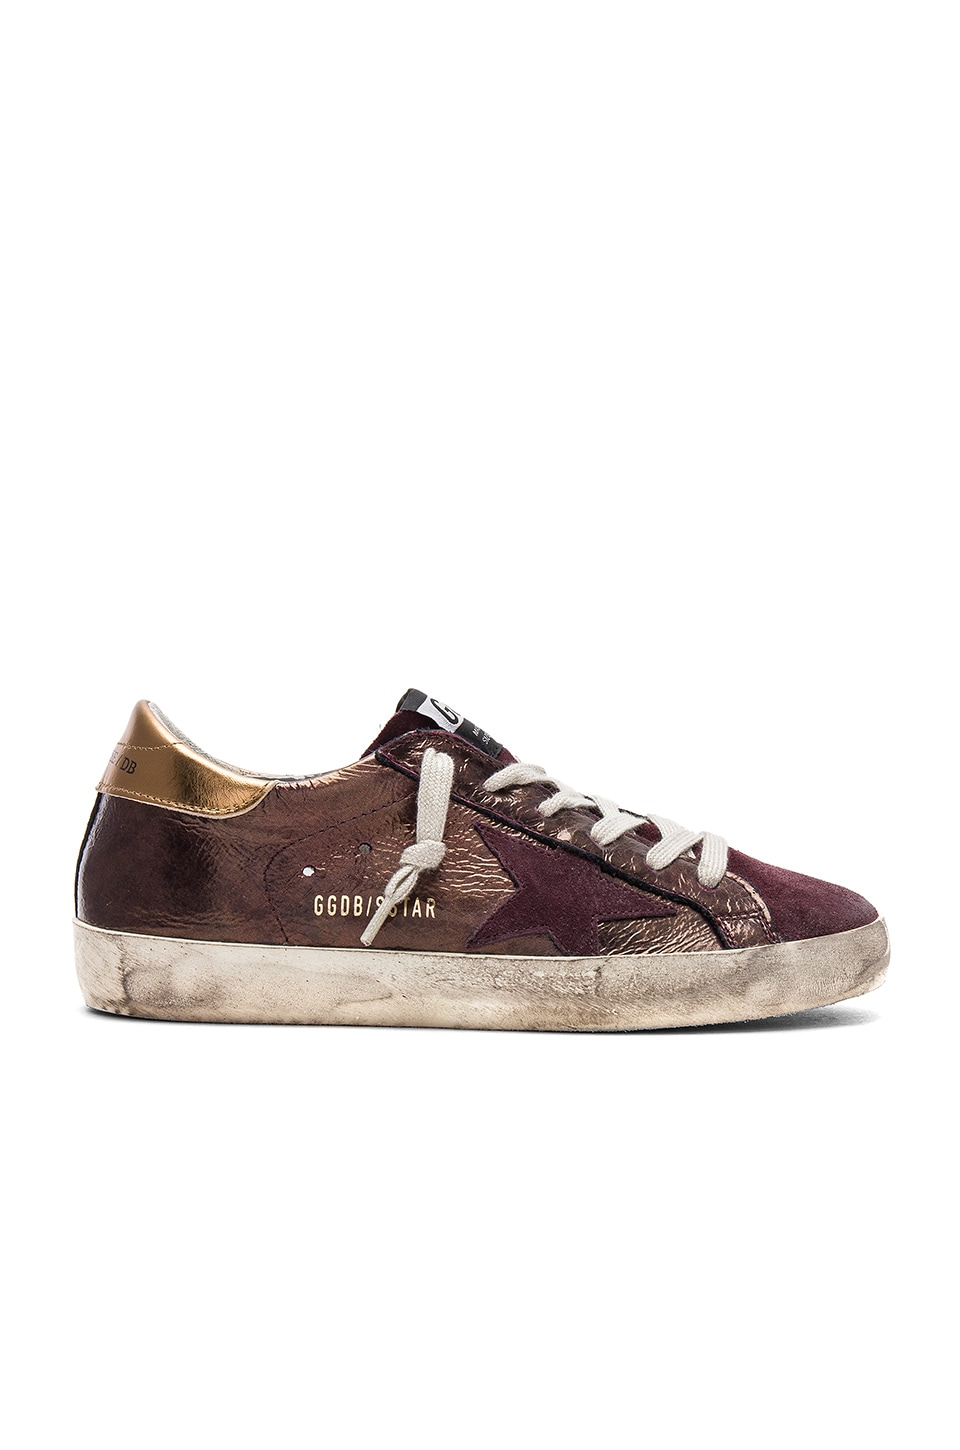 Golden Goose Superstar Sneaker in Bronze & Purple Star